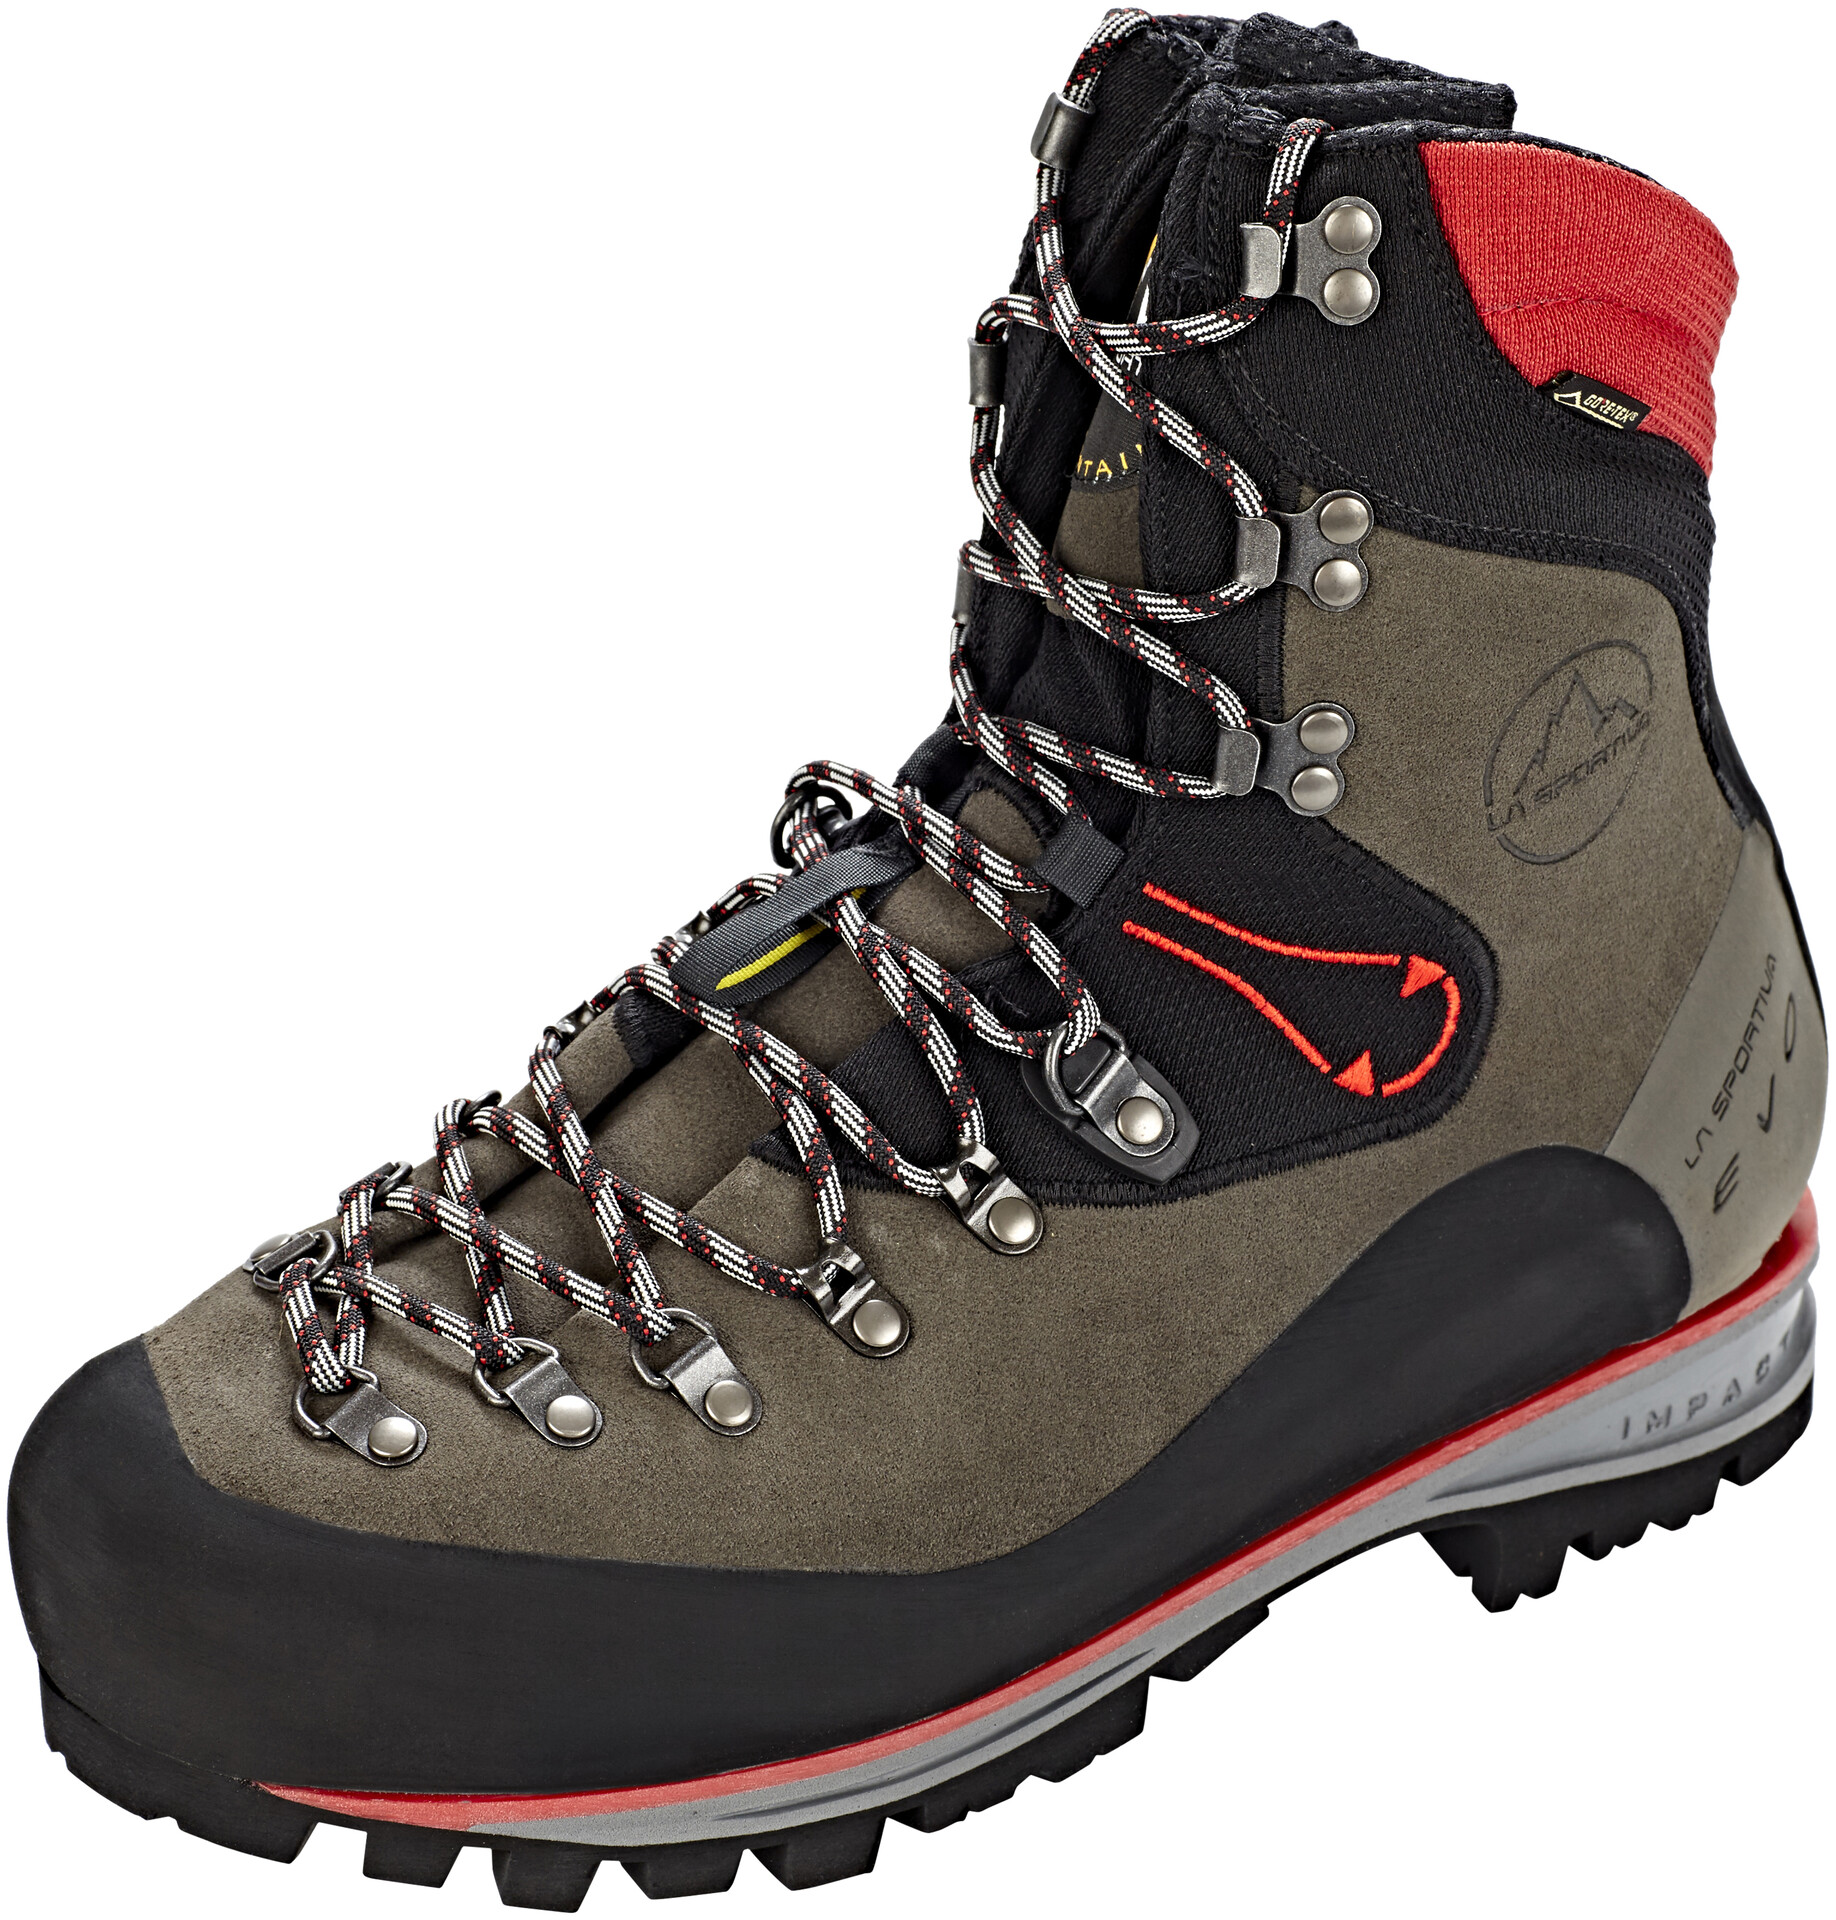 La Sportiva Nepal Trek Evo GTX Schoenen Heren, anthracitered